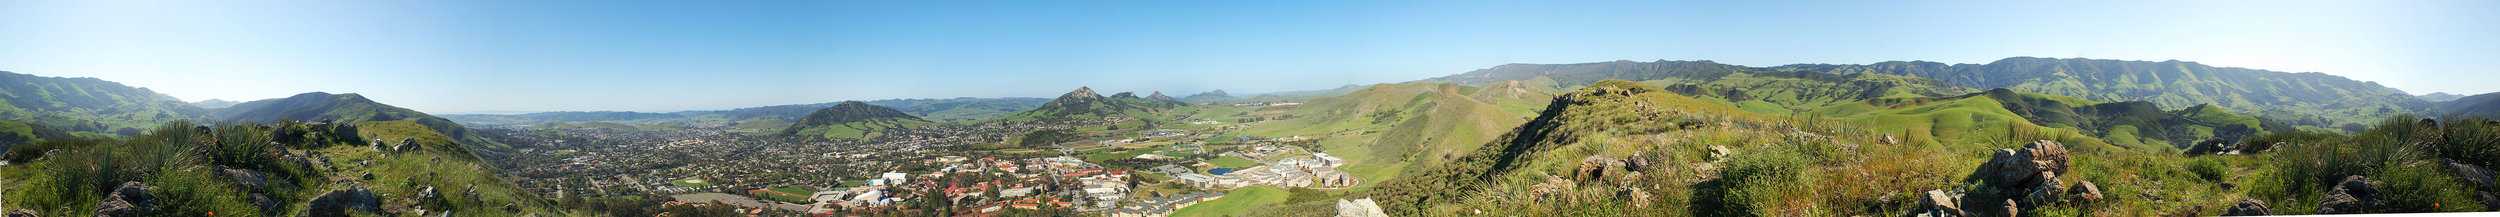 A 360° degree view of San Luis Obispo, image by Gregg M. Erickson